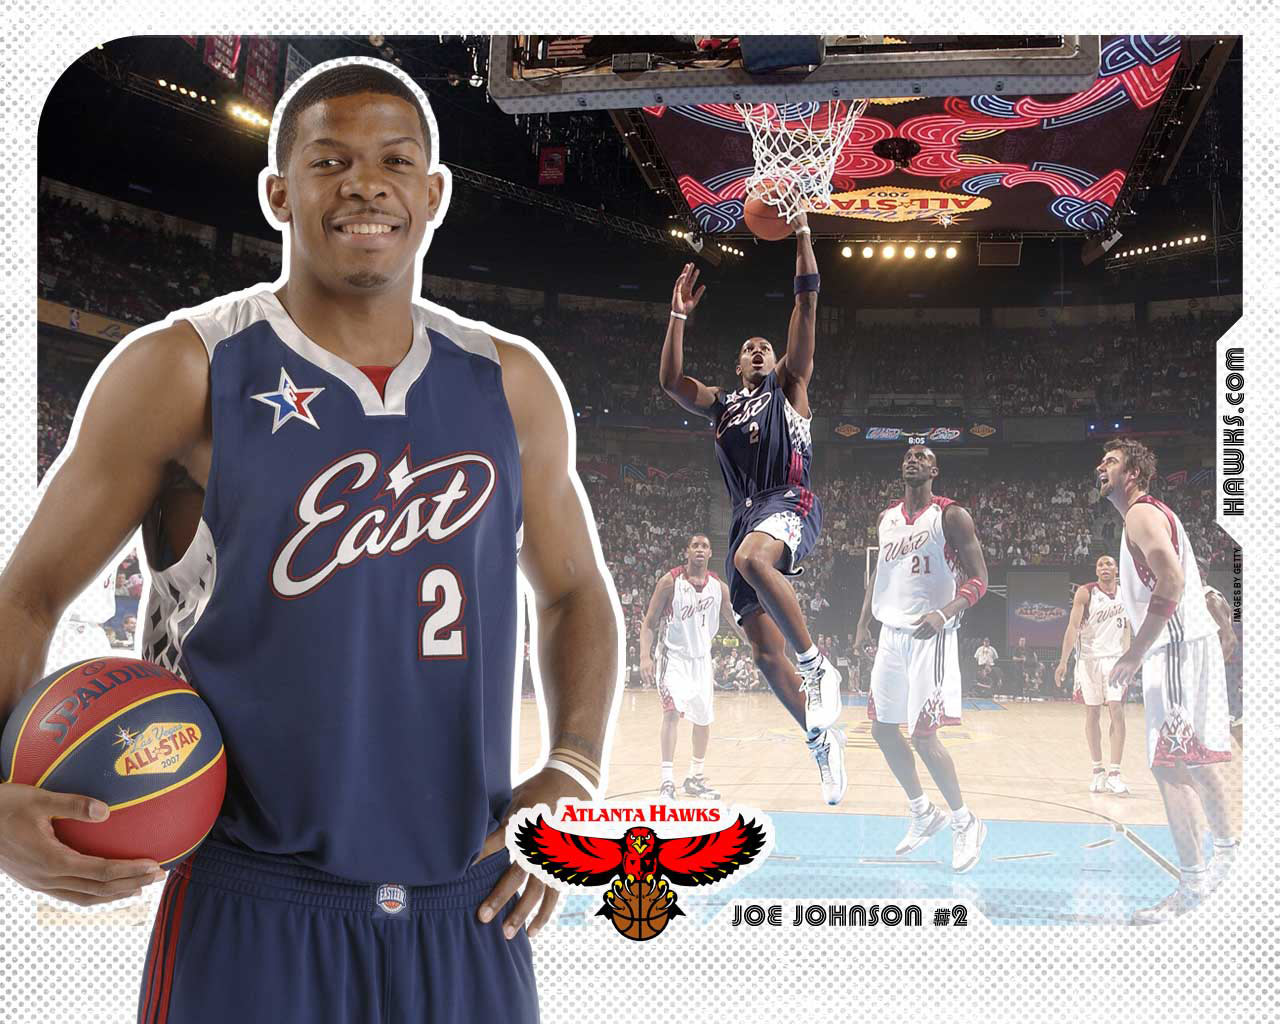 Joe Johnson All Star 2007 Wallpaper Basketball 1280x1024